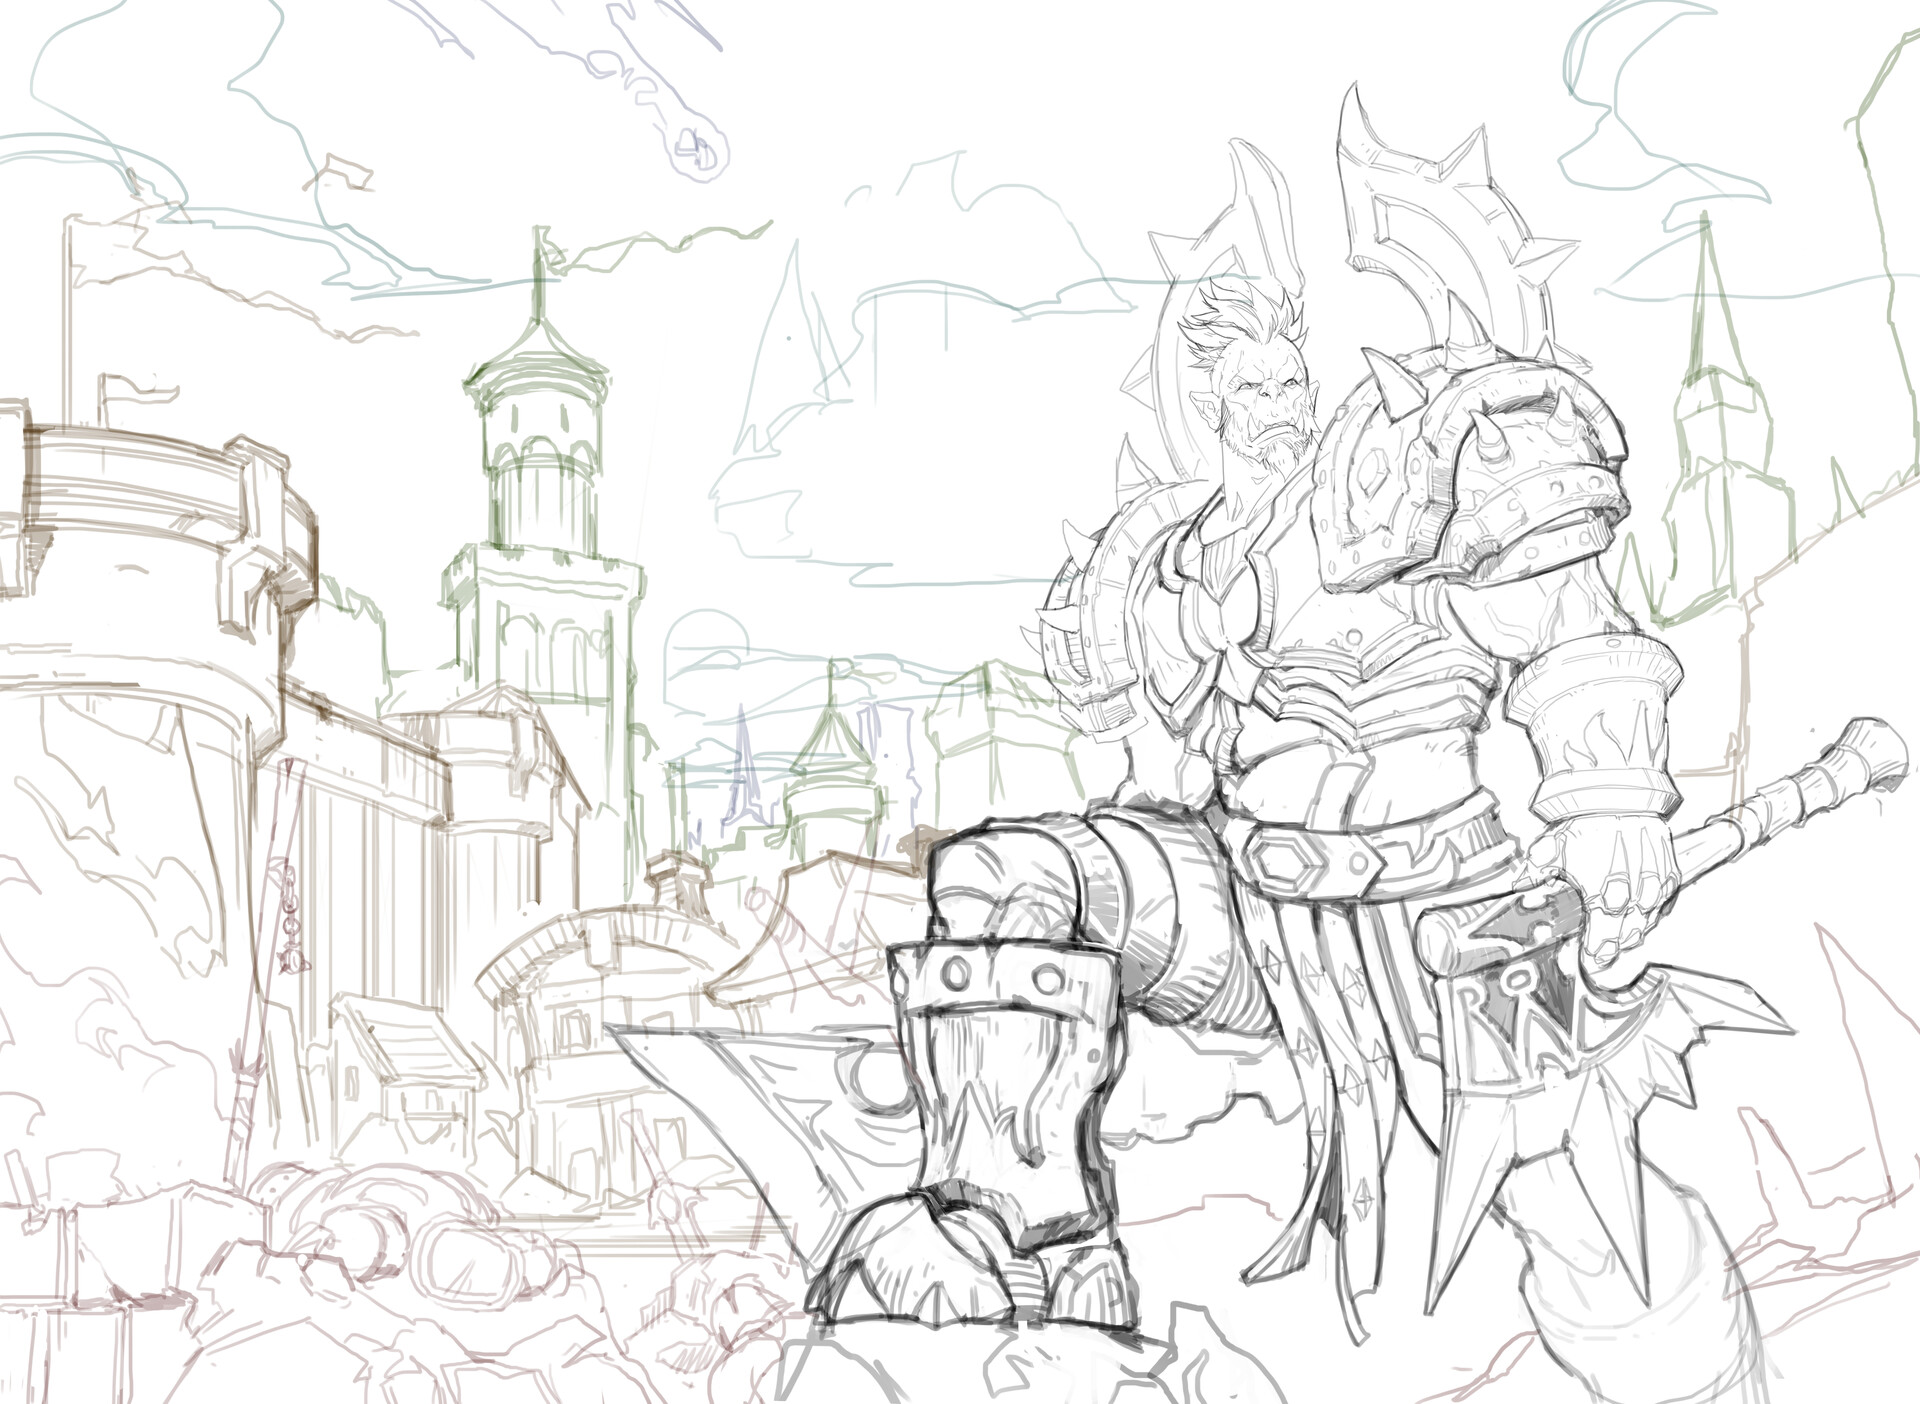 WoW inspired illustration - Lineart